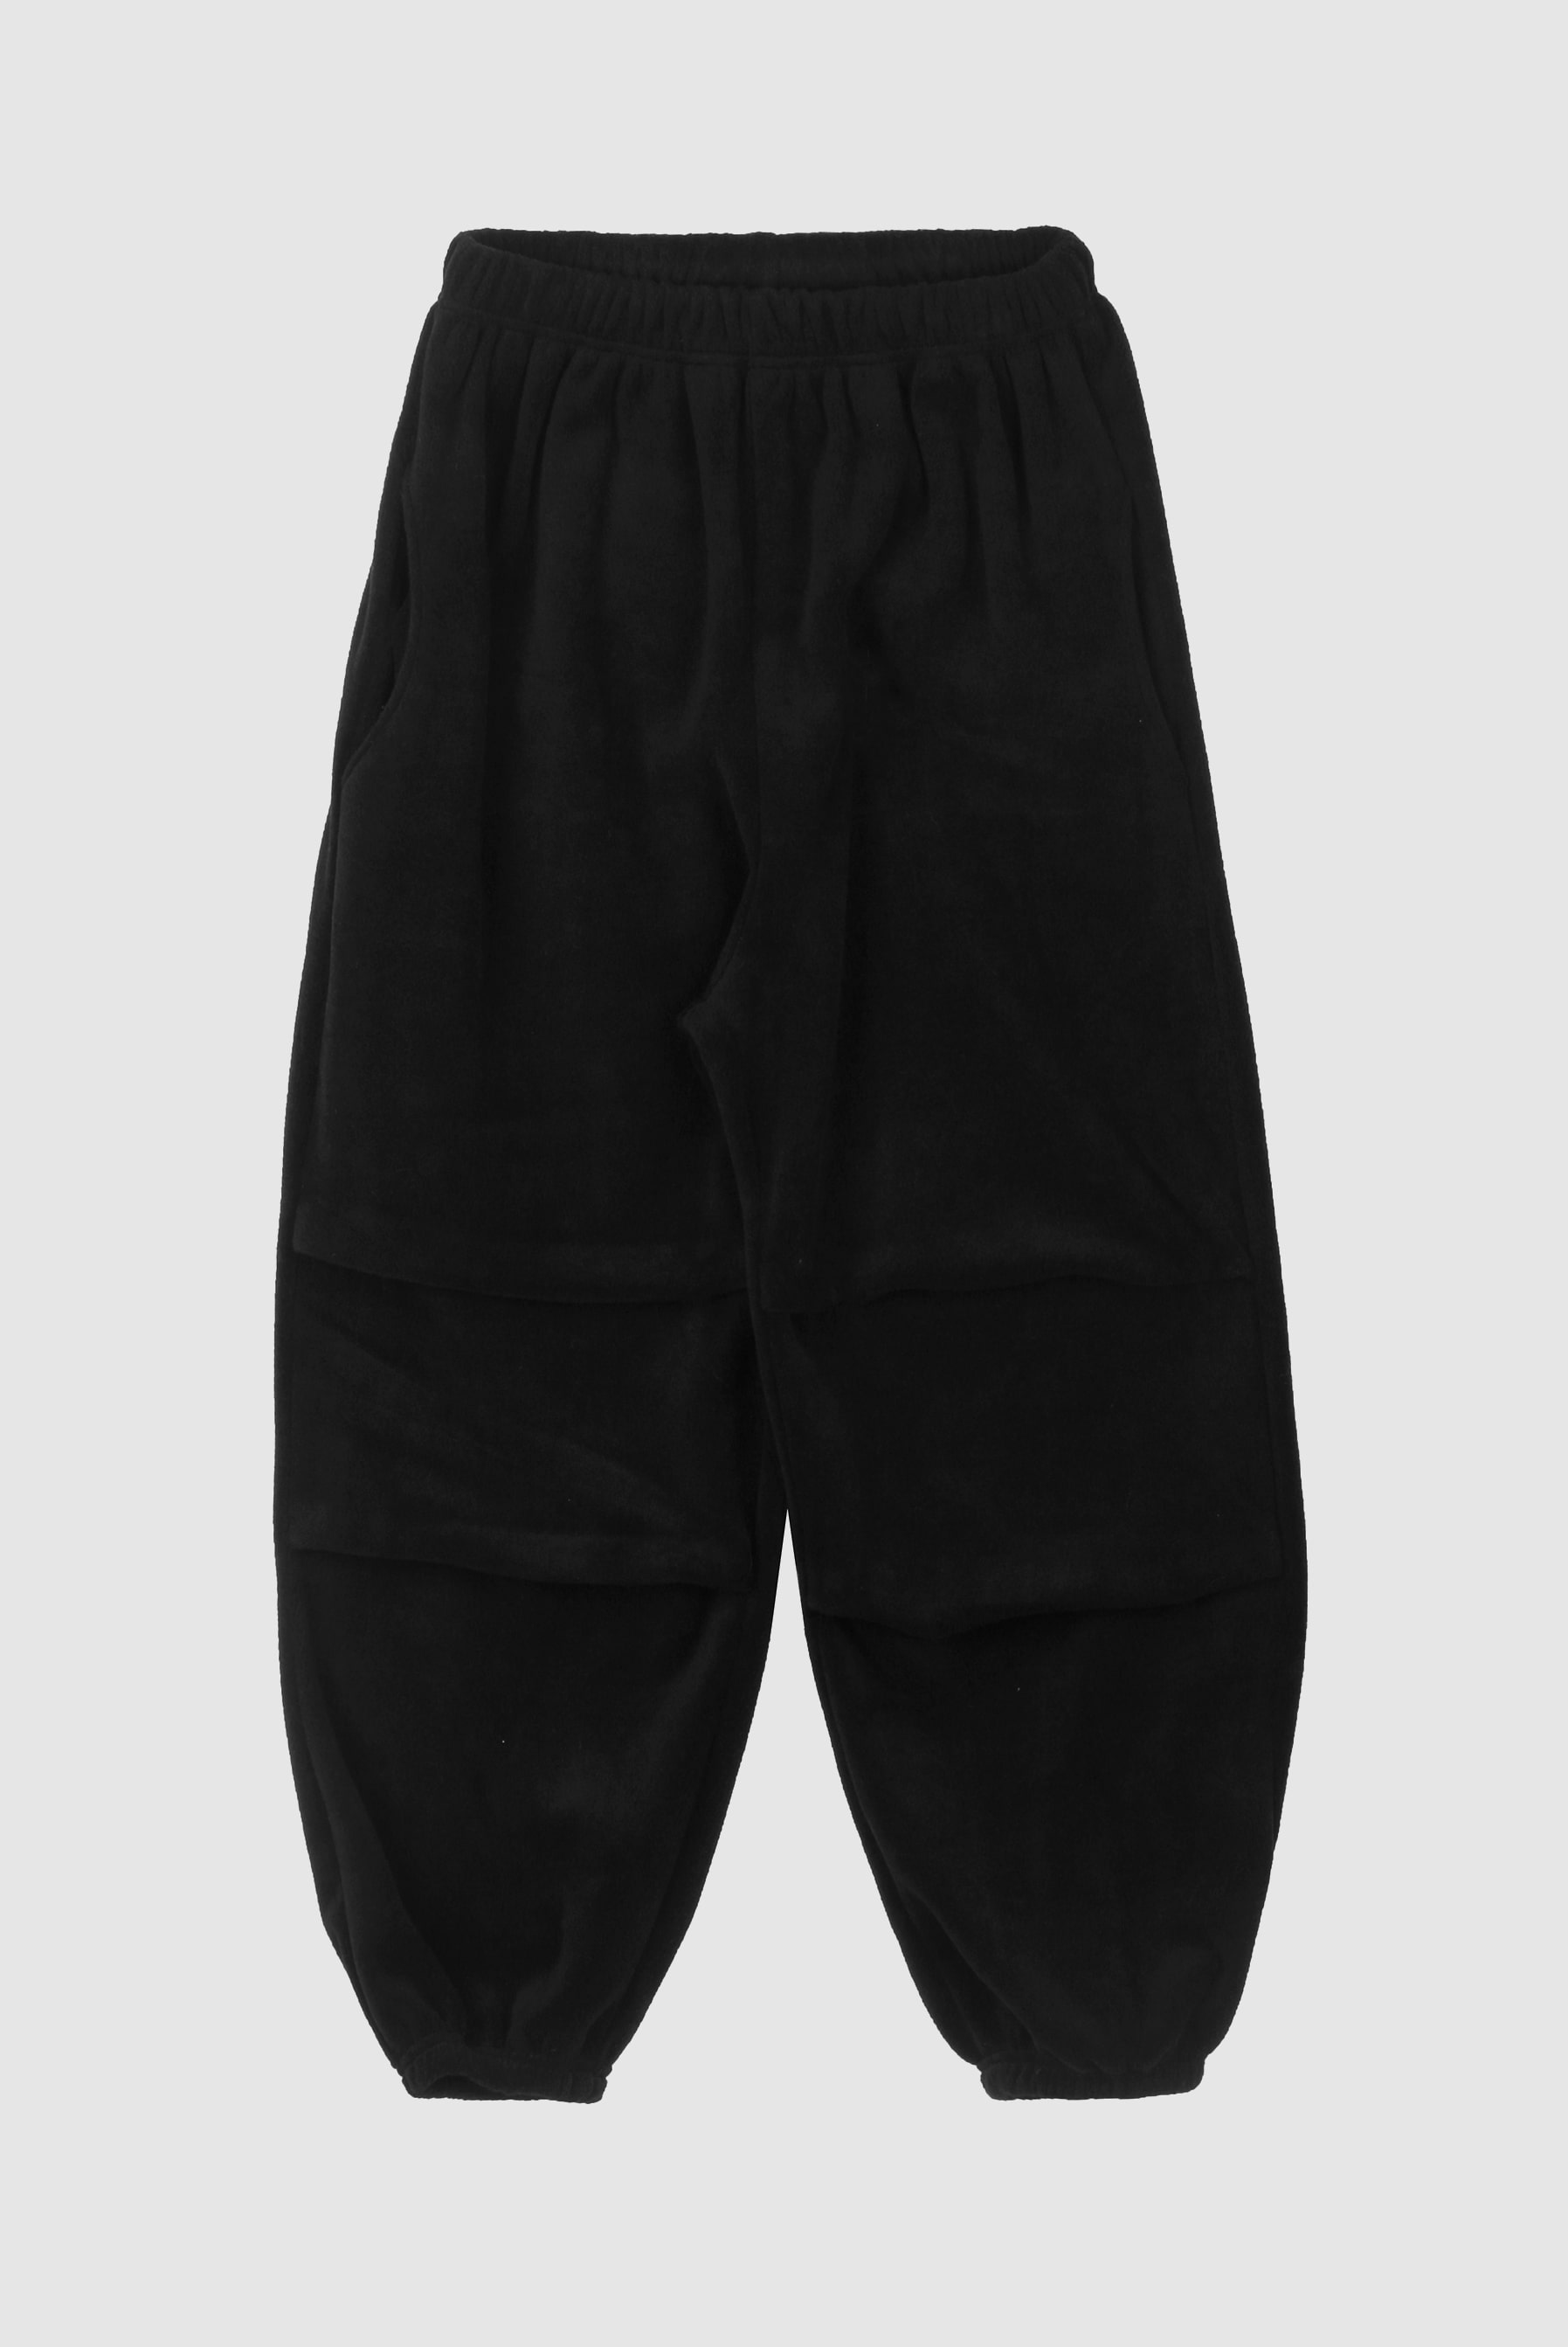 Fleece Tuck Joger_Pant